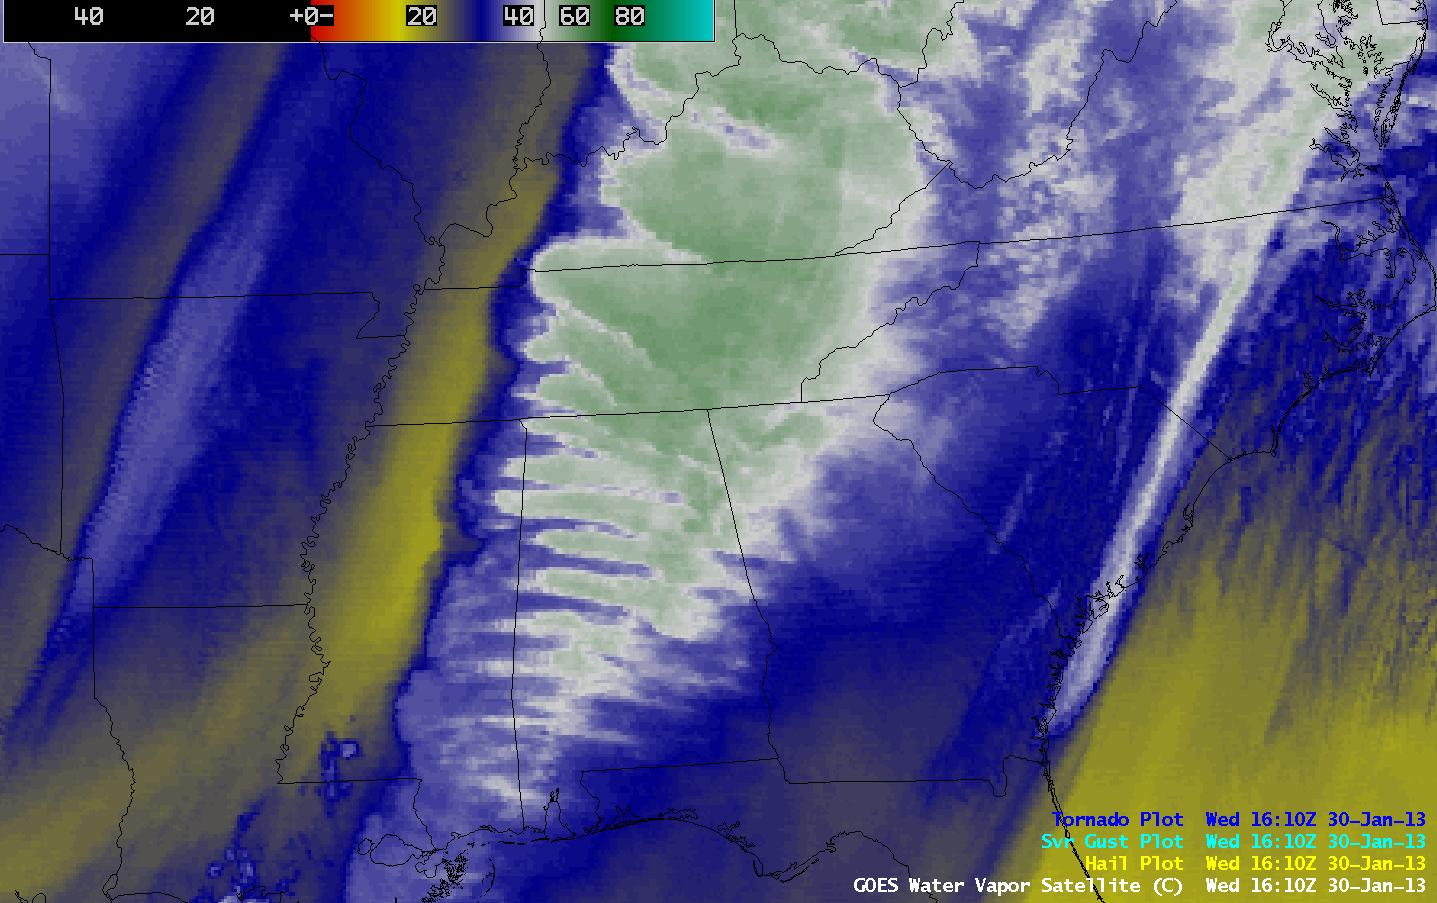 GOES-13 6.5 µm water vapor channel images (click image to play animation)